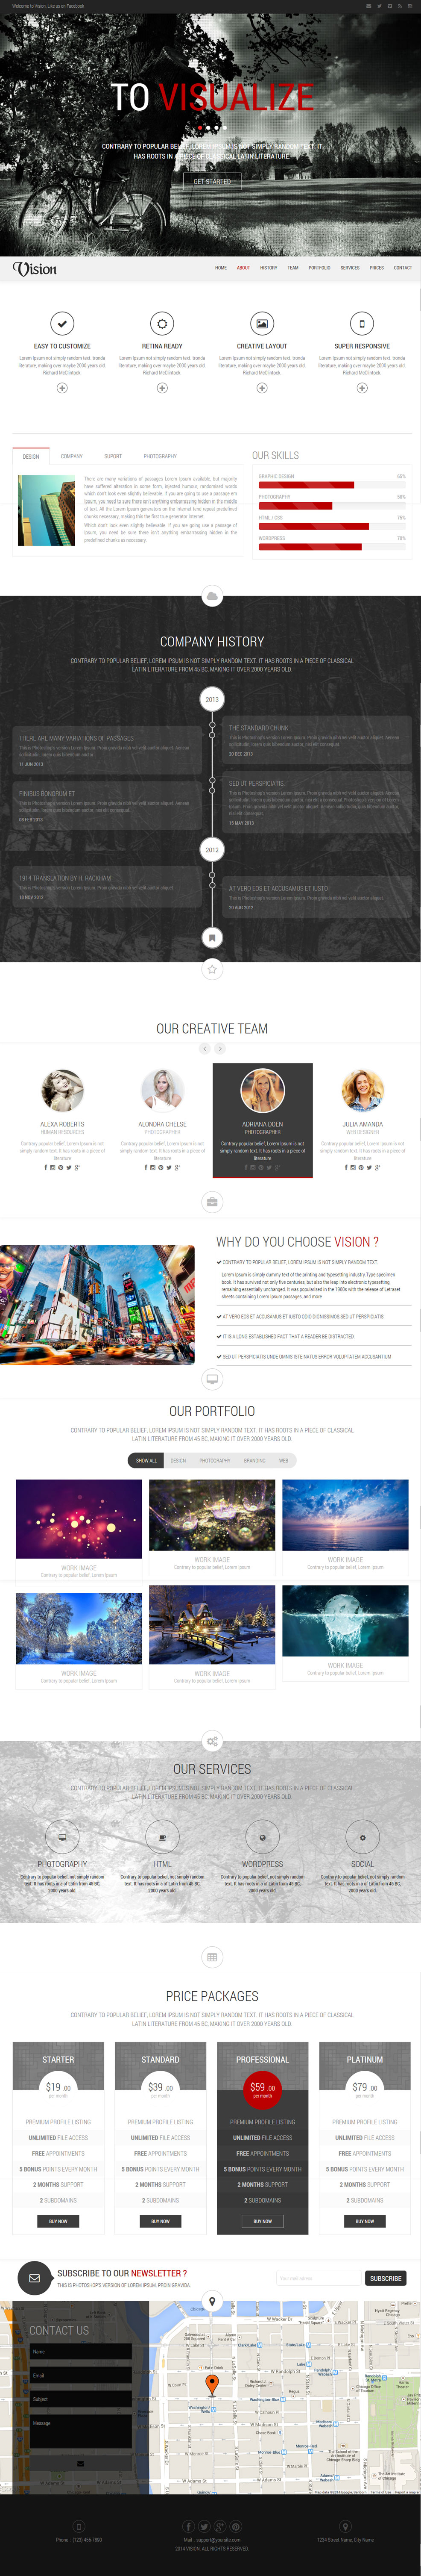 Web Development Company | Template, Resume styles and Web themes